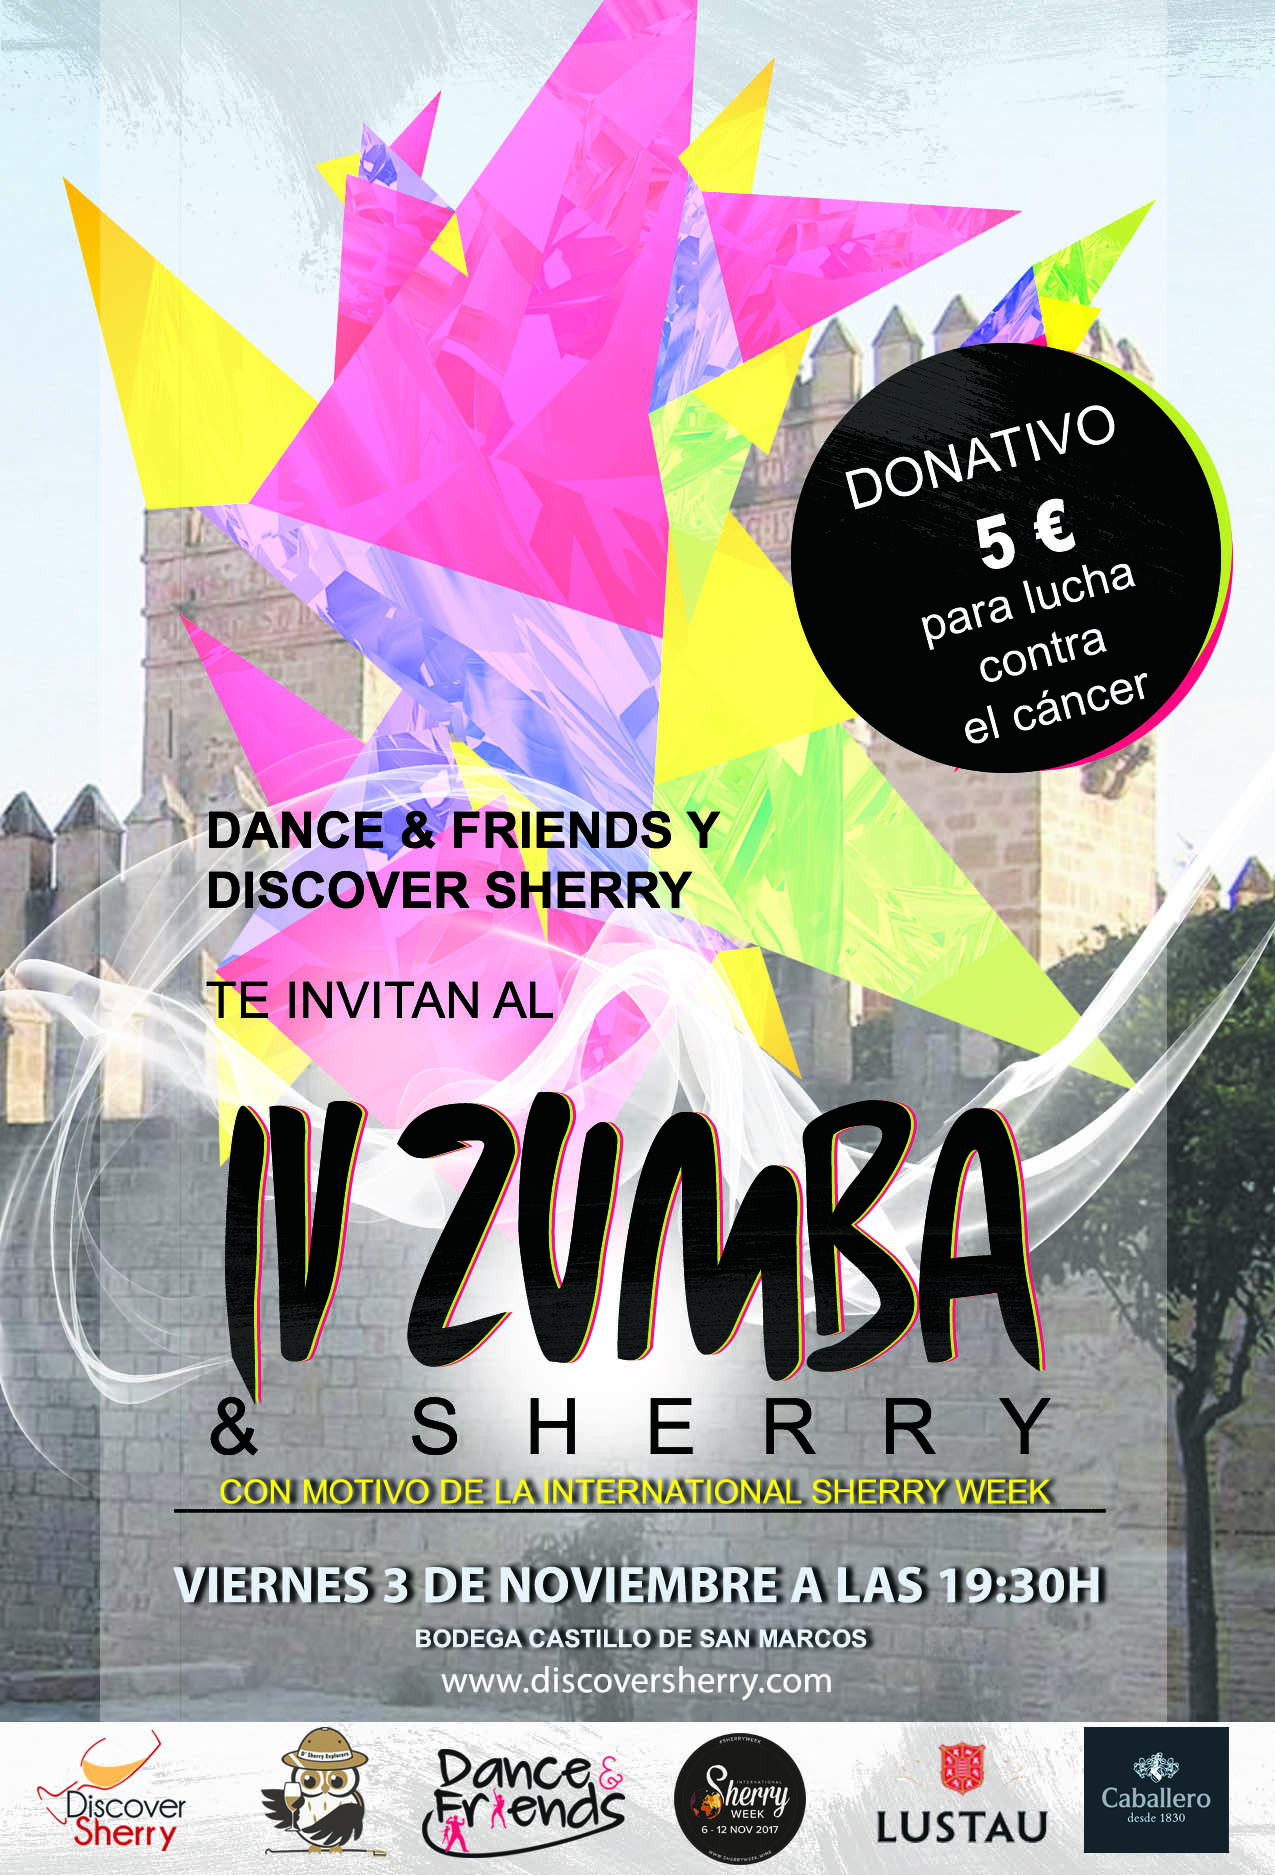 La International Sherry Week comenzará con ZUMBA and SHERRY/ International Sherry Week will start out with ZUMBA and SHERRY